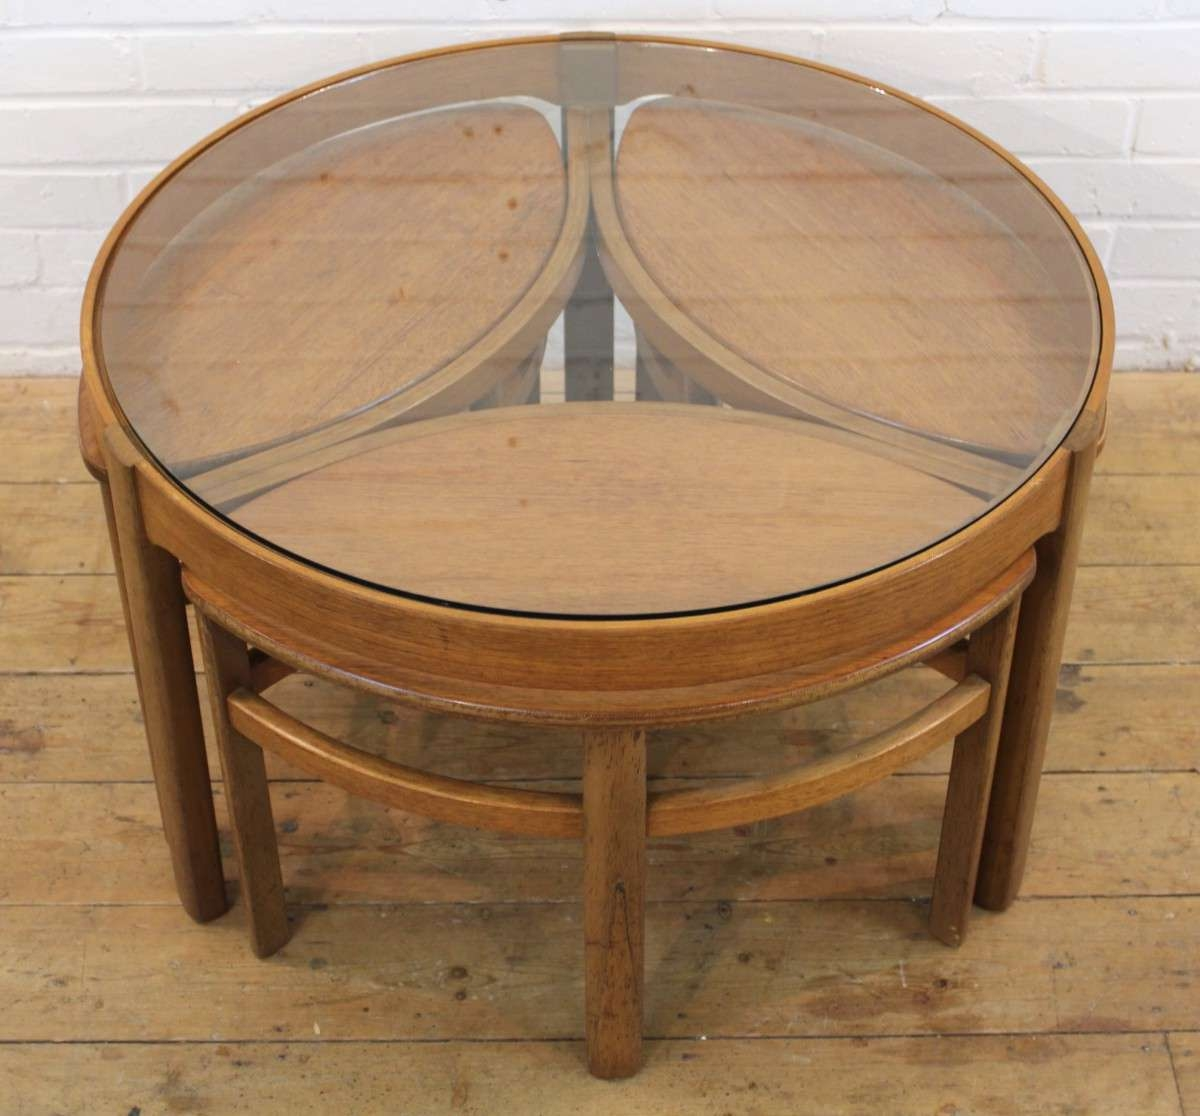 Pretentious Table Mod Stainlesssteel Wood Set3 Nesting Round With Regard To Trendy Retro Teak Glass Coffee Tables (View 19 of 20)